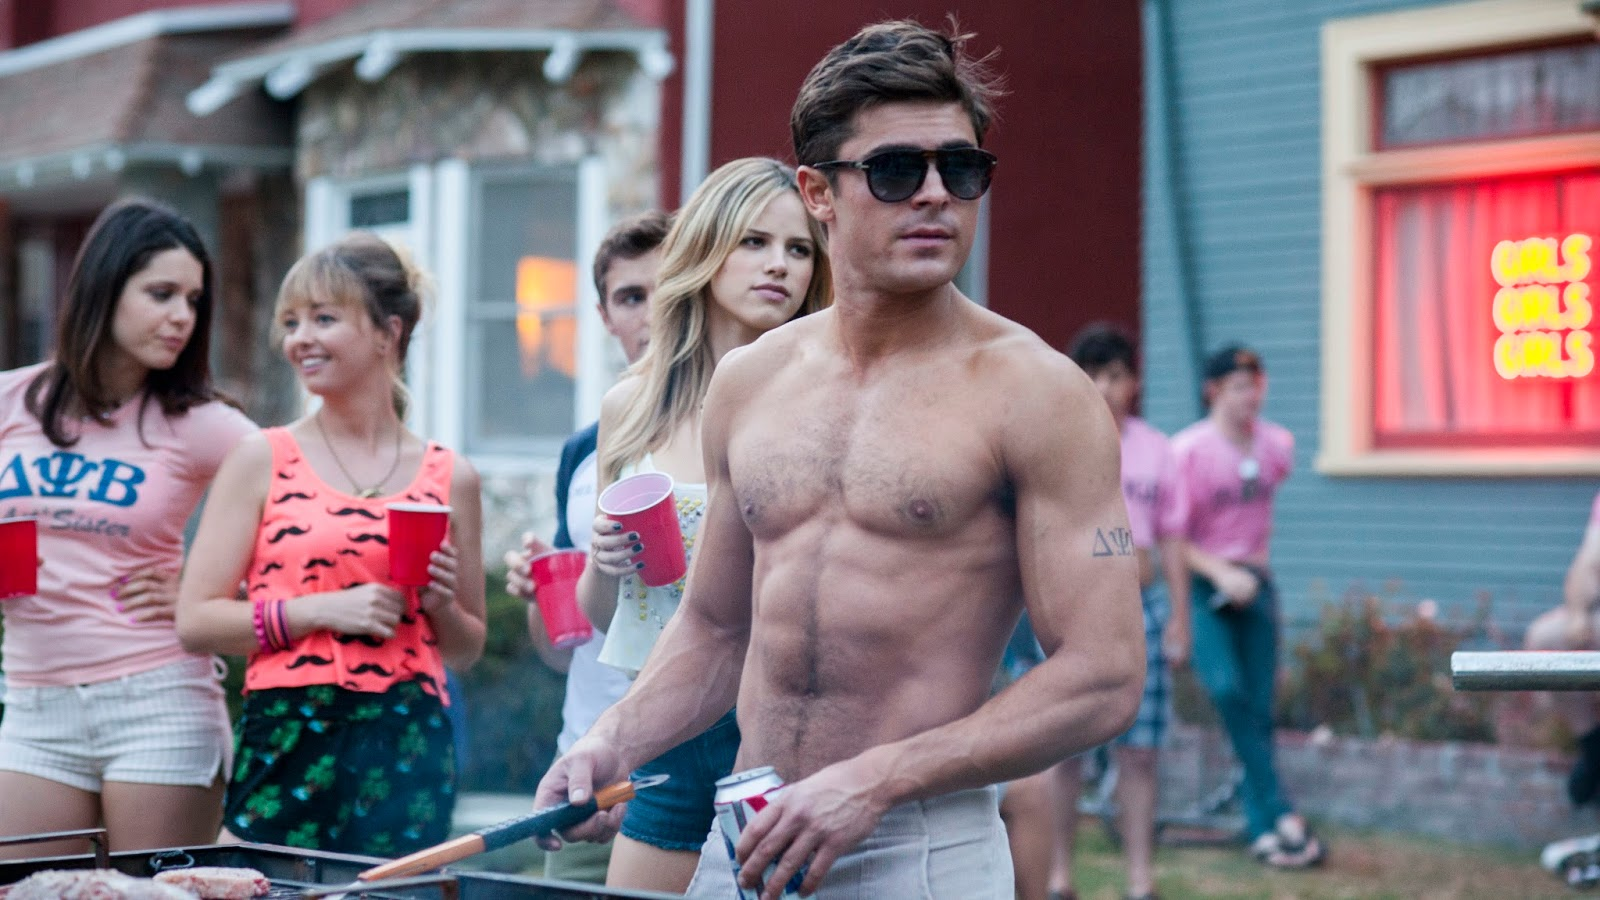 Seth Rogen Zac Efron Neighbors